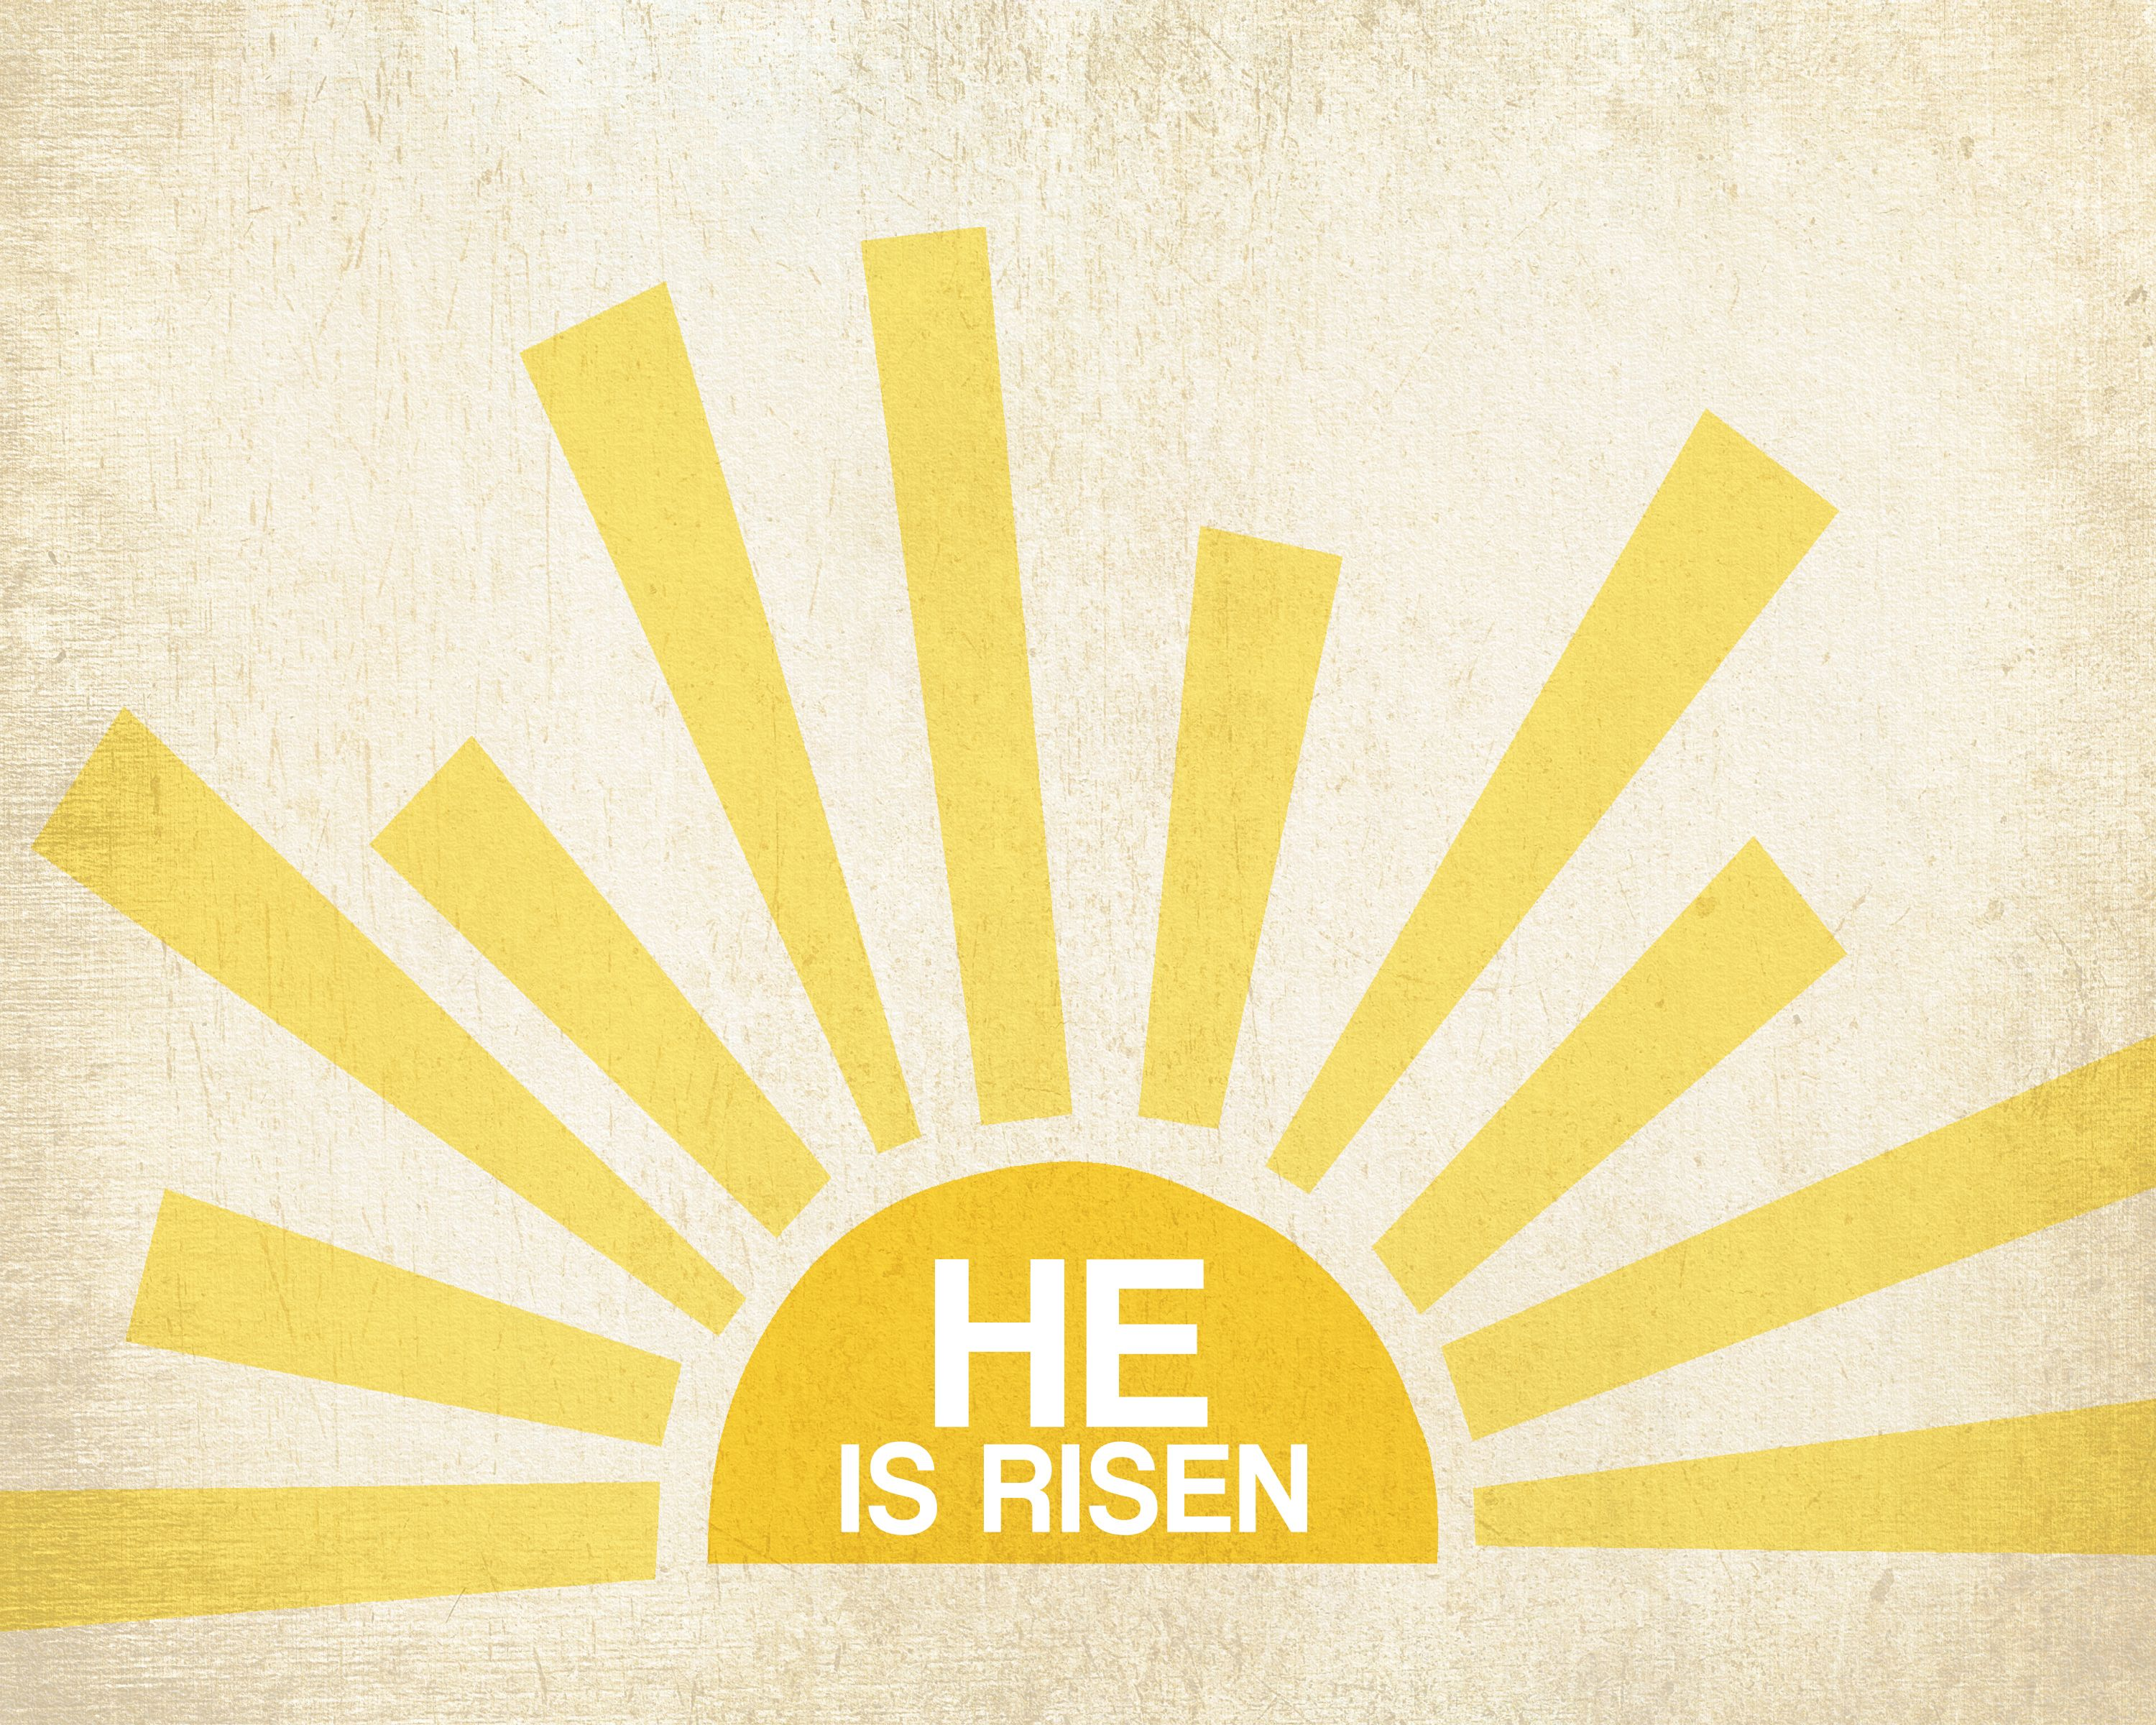 22+ He is risen clipart free information